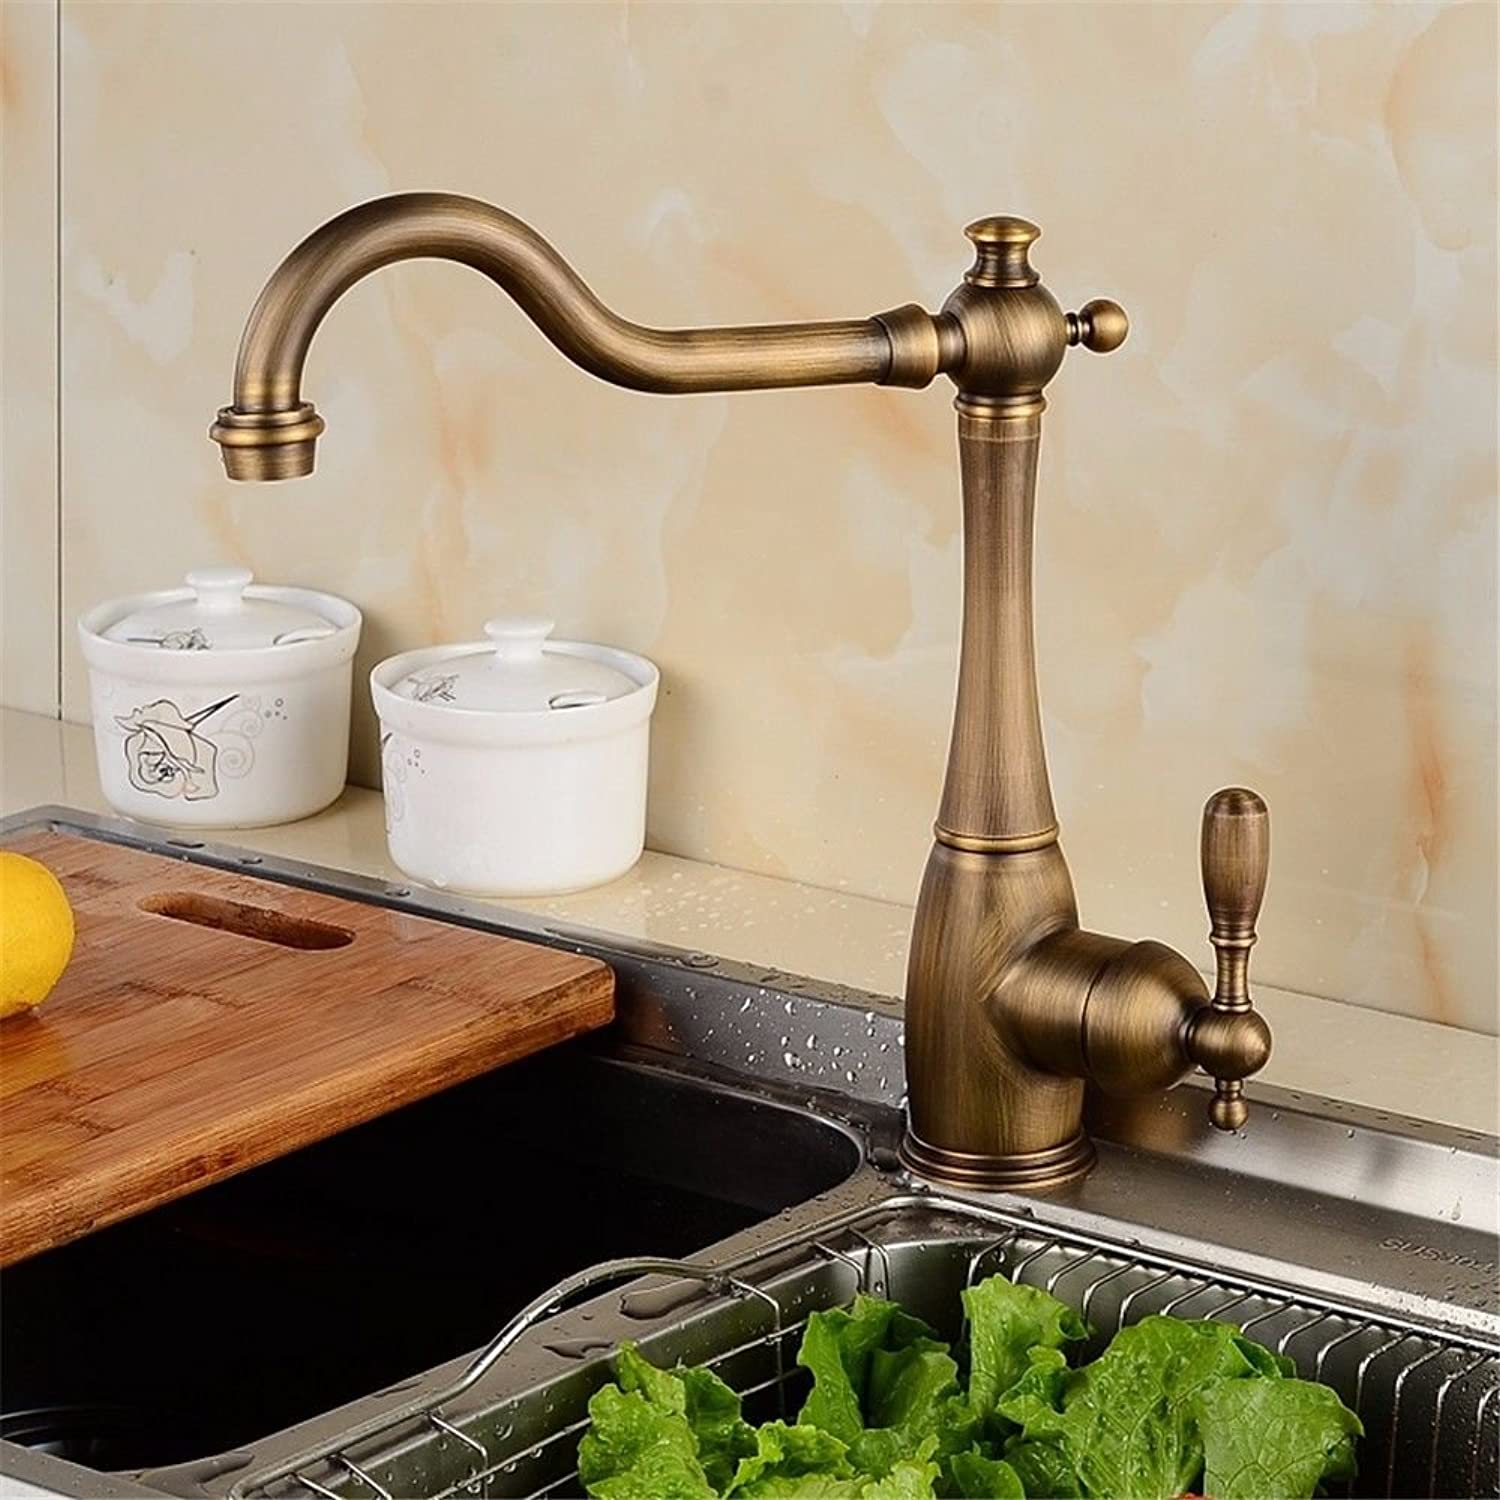 Commercial Single Lever Pull Down Kitchen Sink Faucet Brass Constructed Polished Copper Faucet Hot and Cold Water Kitchen Sink Faucet redating Classical European Faucet